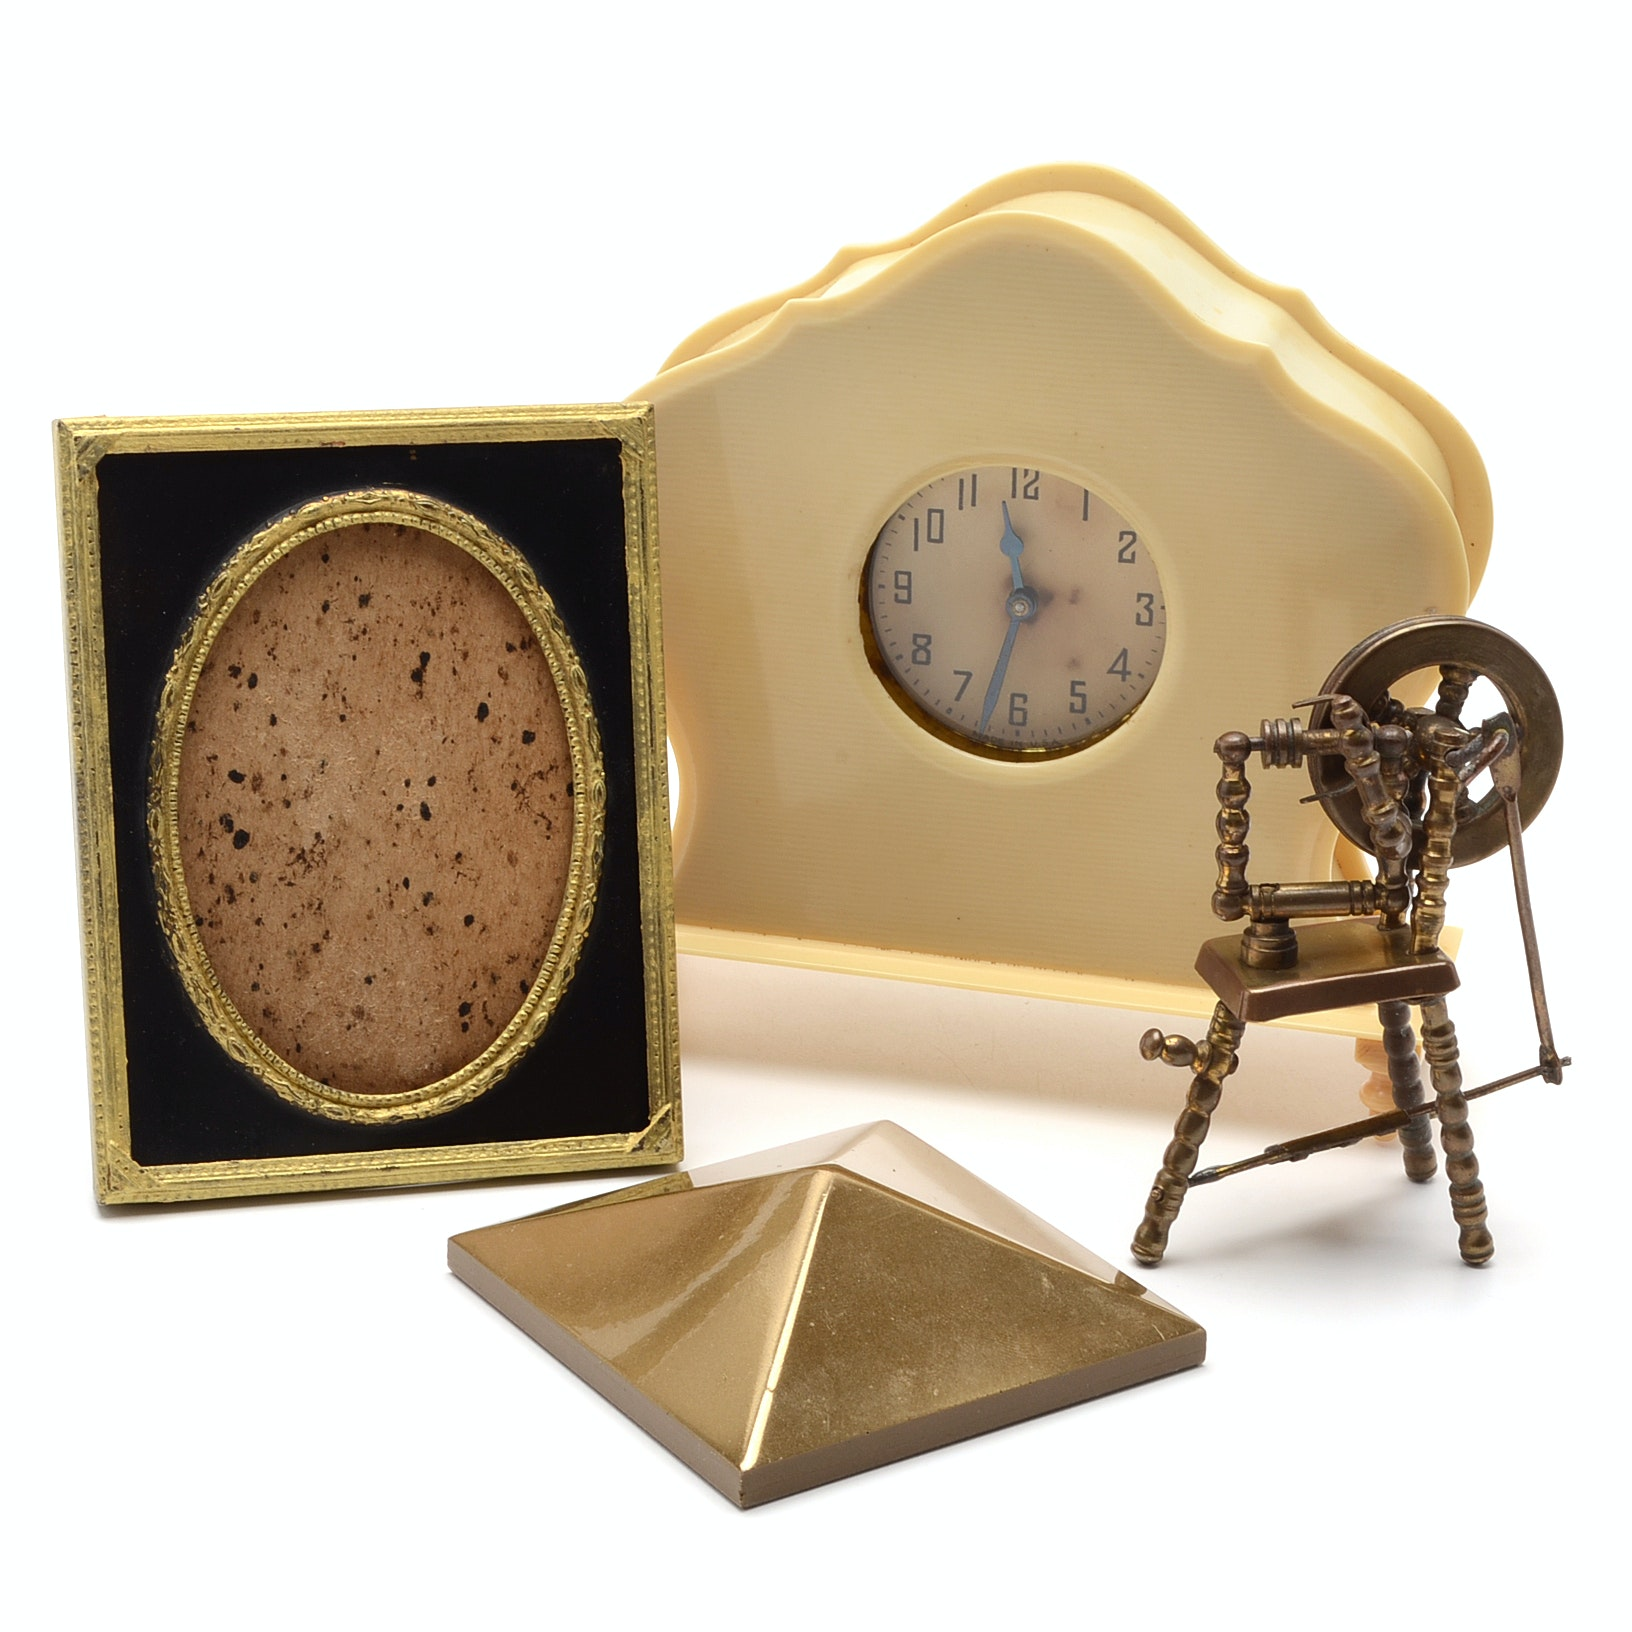 Vintage Celluloid Clock And Array of Decorative Items